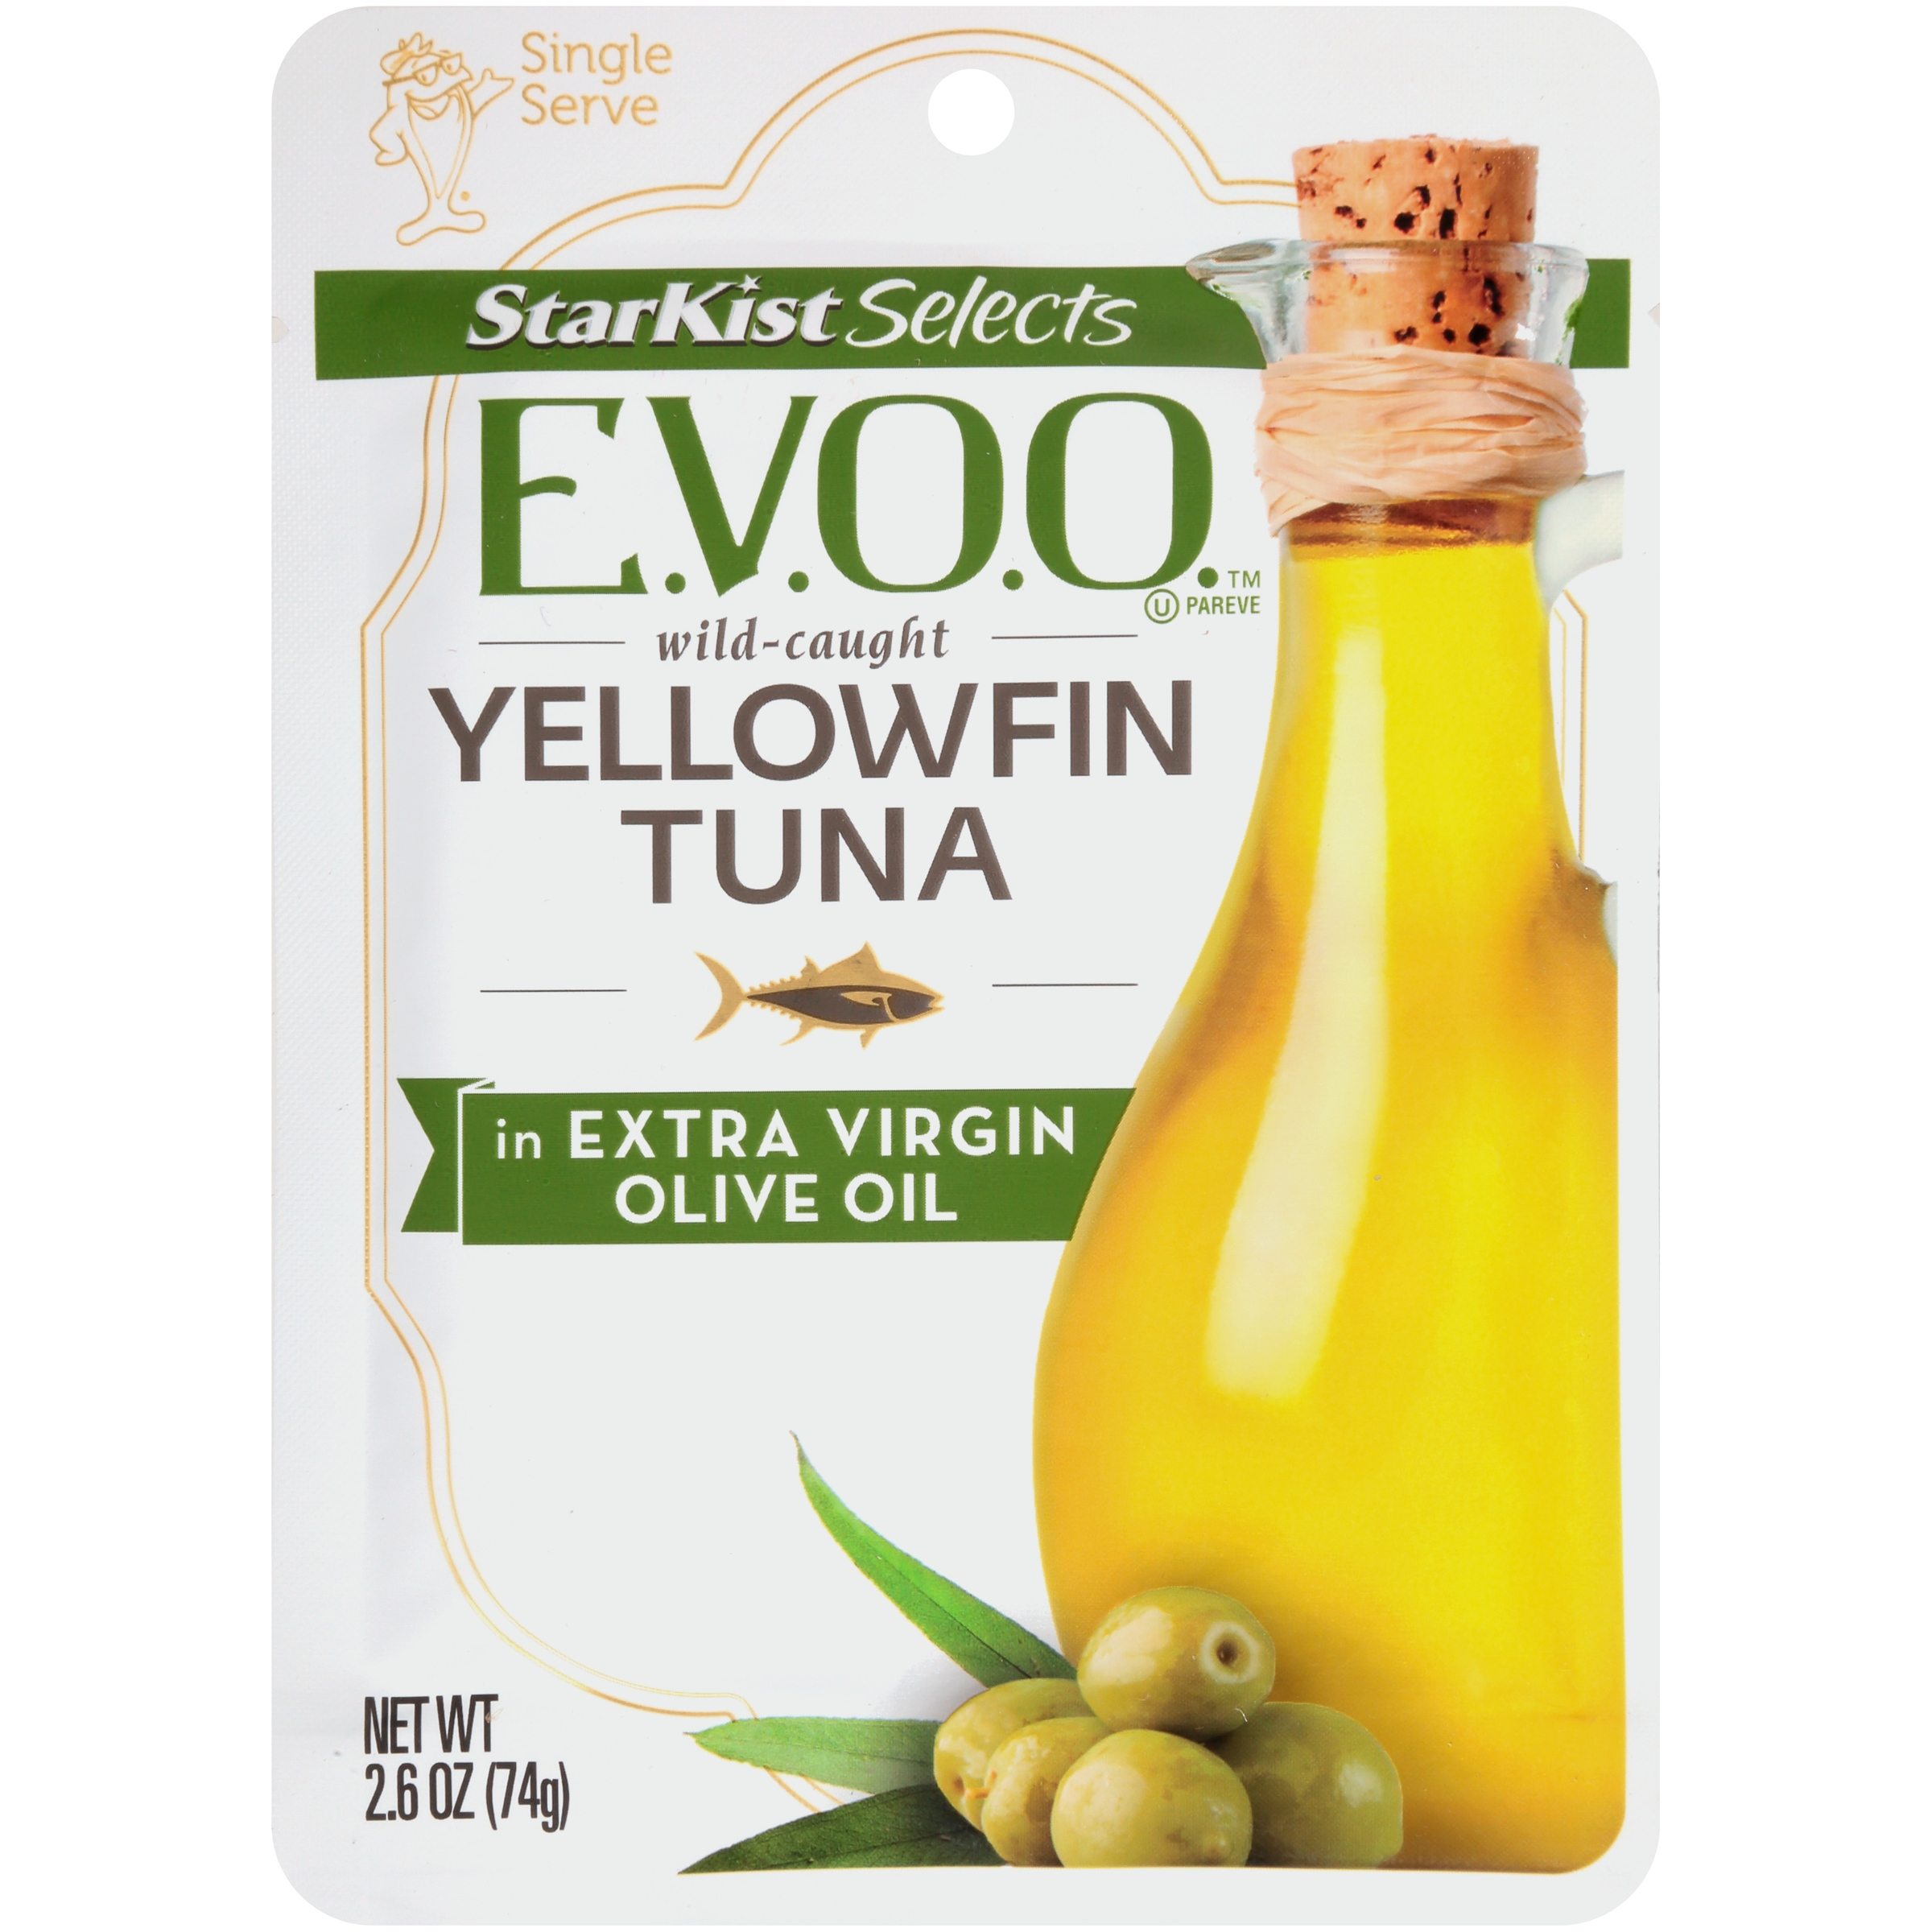 StarKist Selects Yellowfin Tuna in Extra Virgin Olive Oil, 2.6 Ounce Pouch